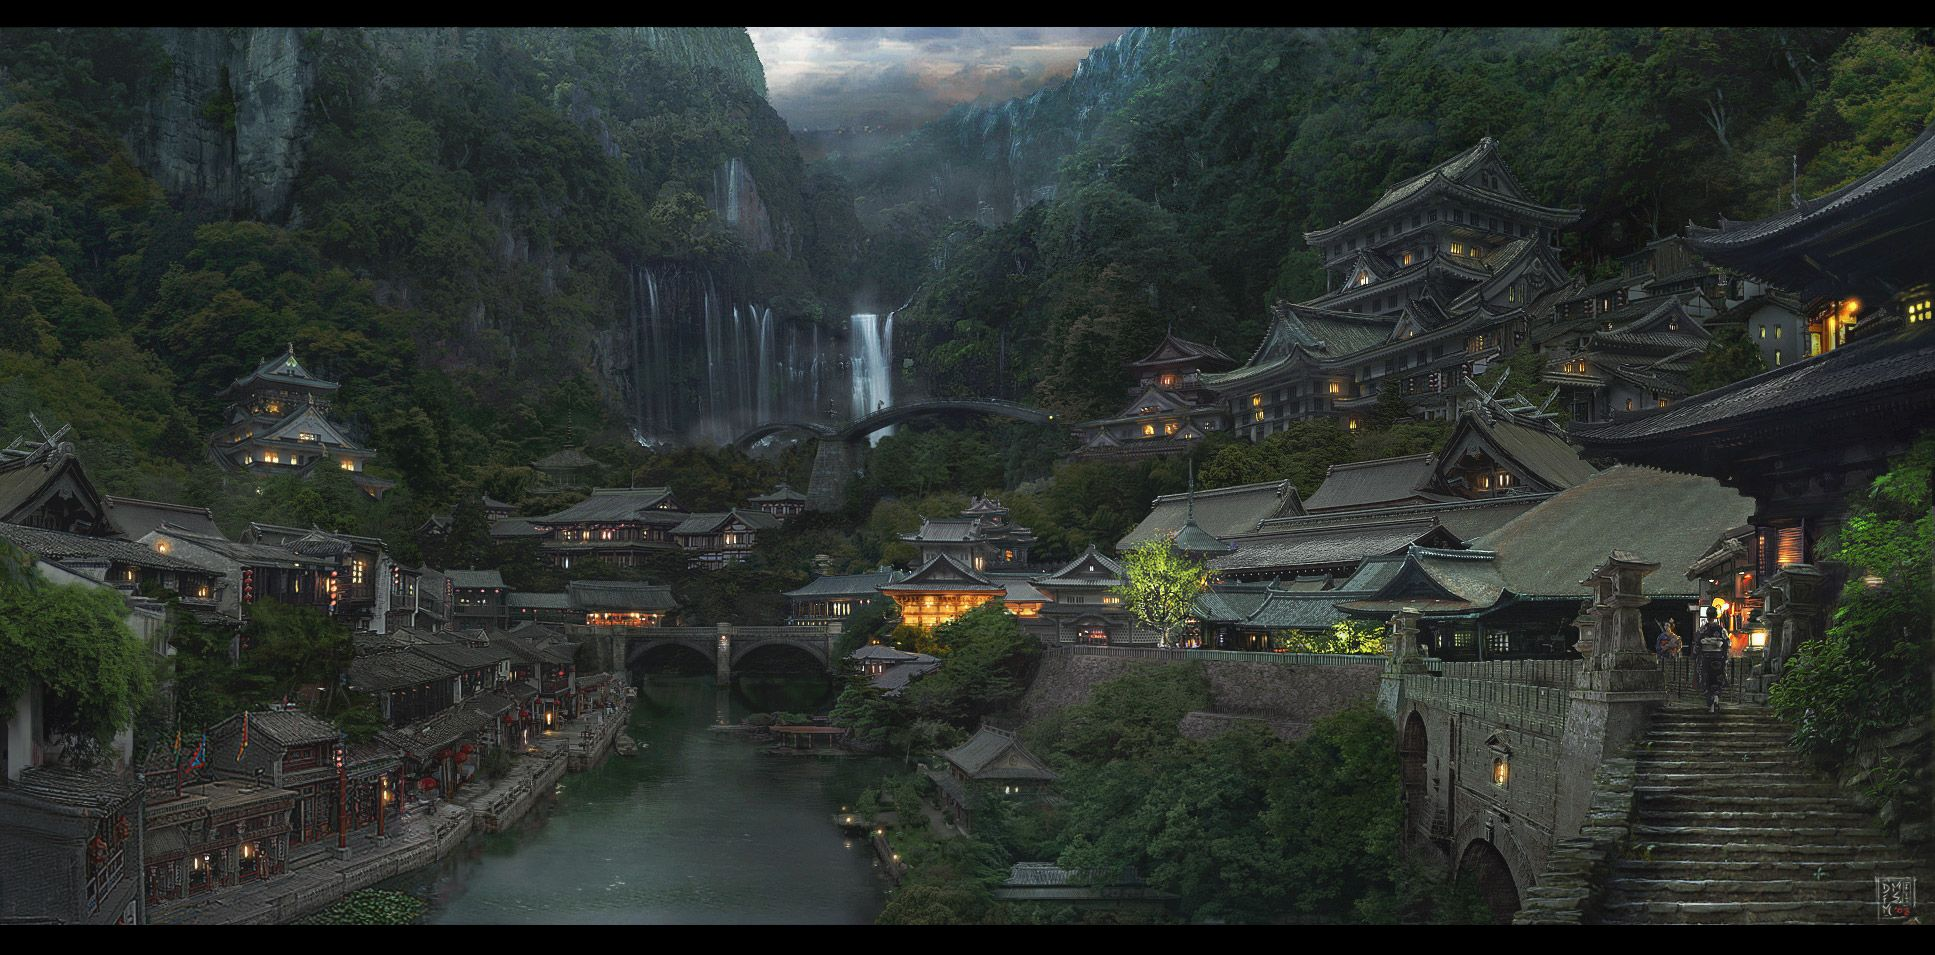 all free hd desktop wallpapers and backgrounds with japanese village evening mountain village waterfall